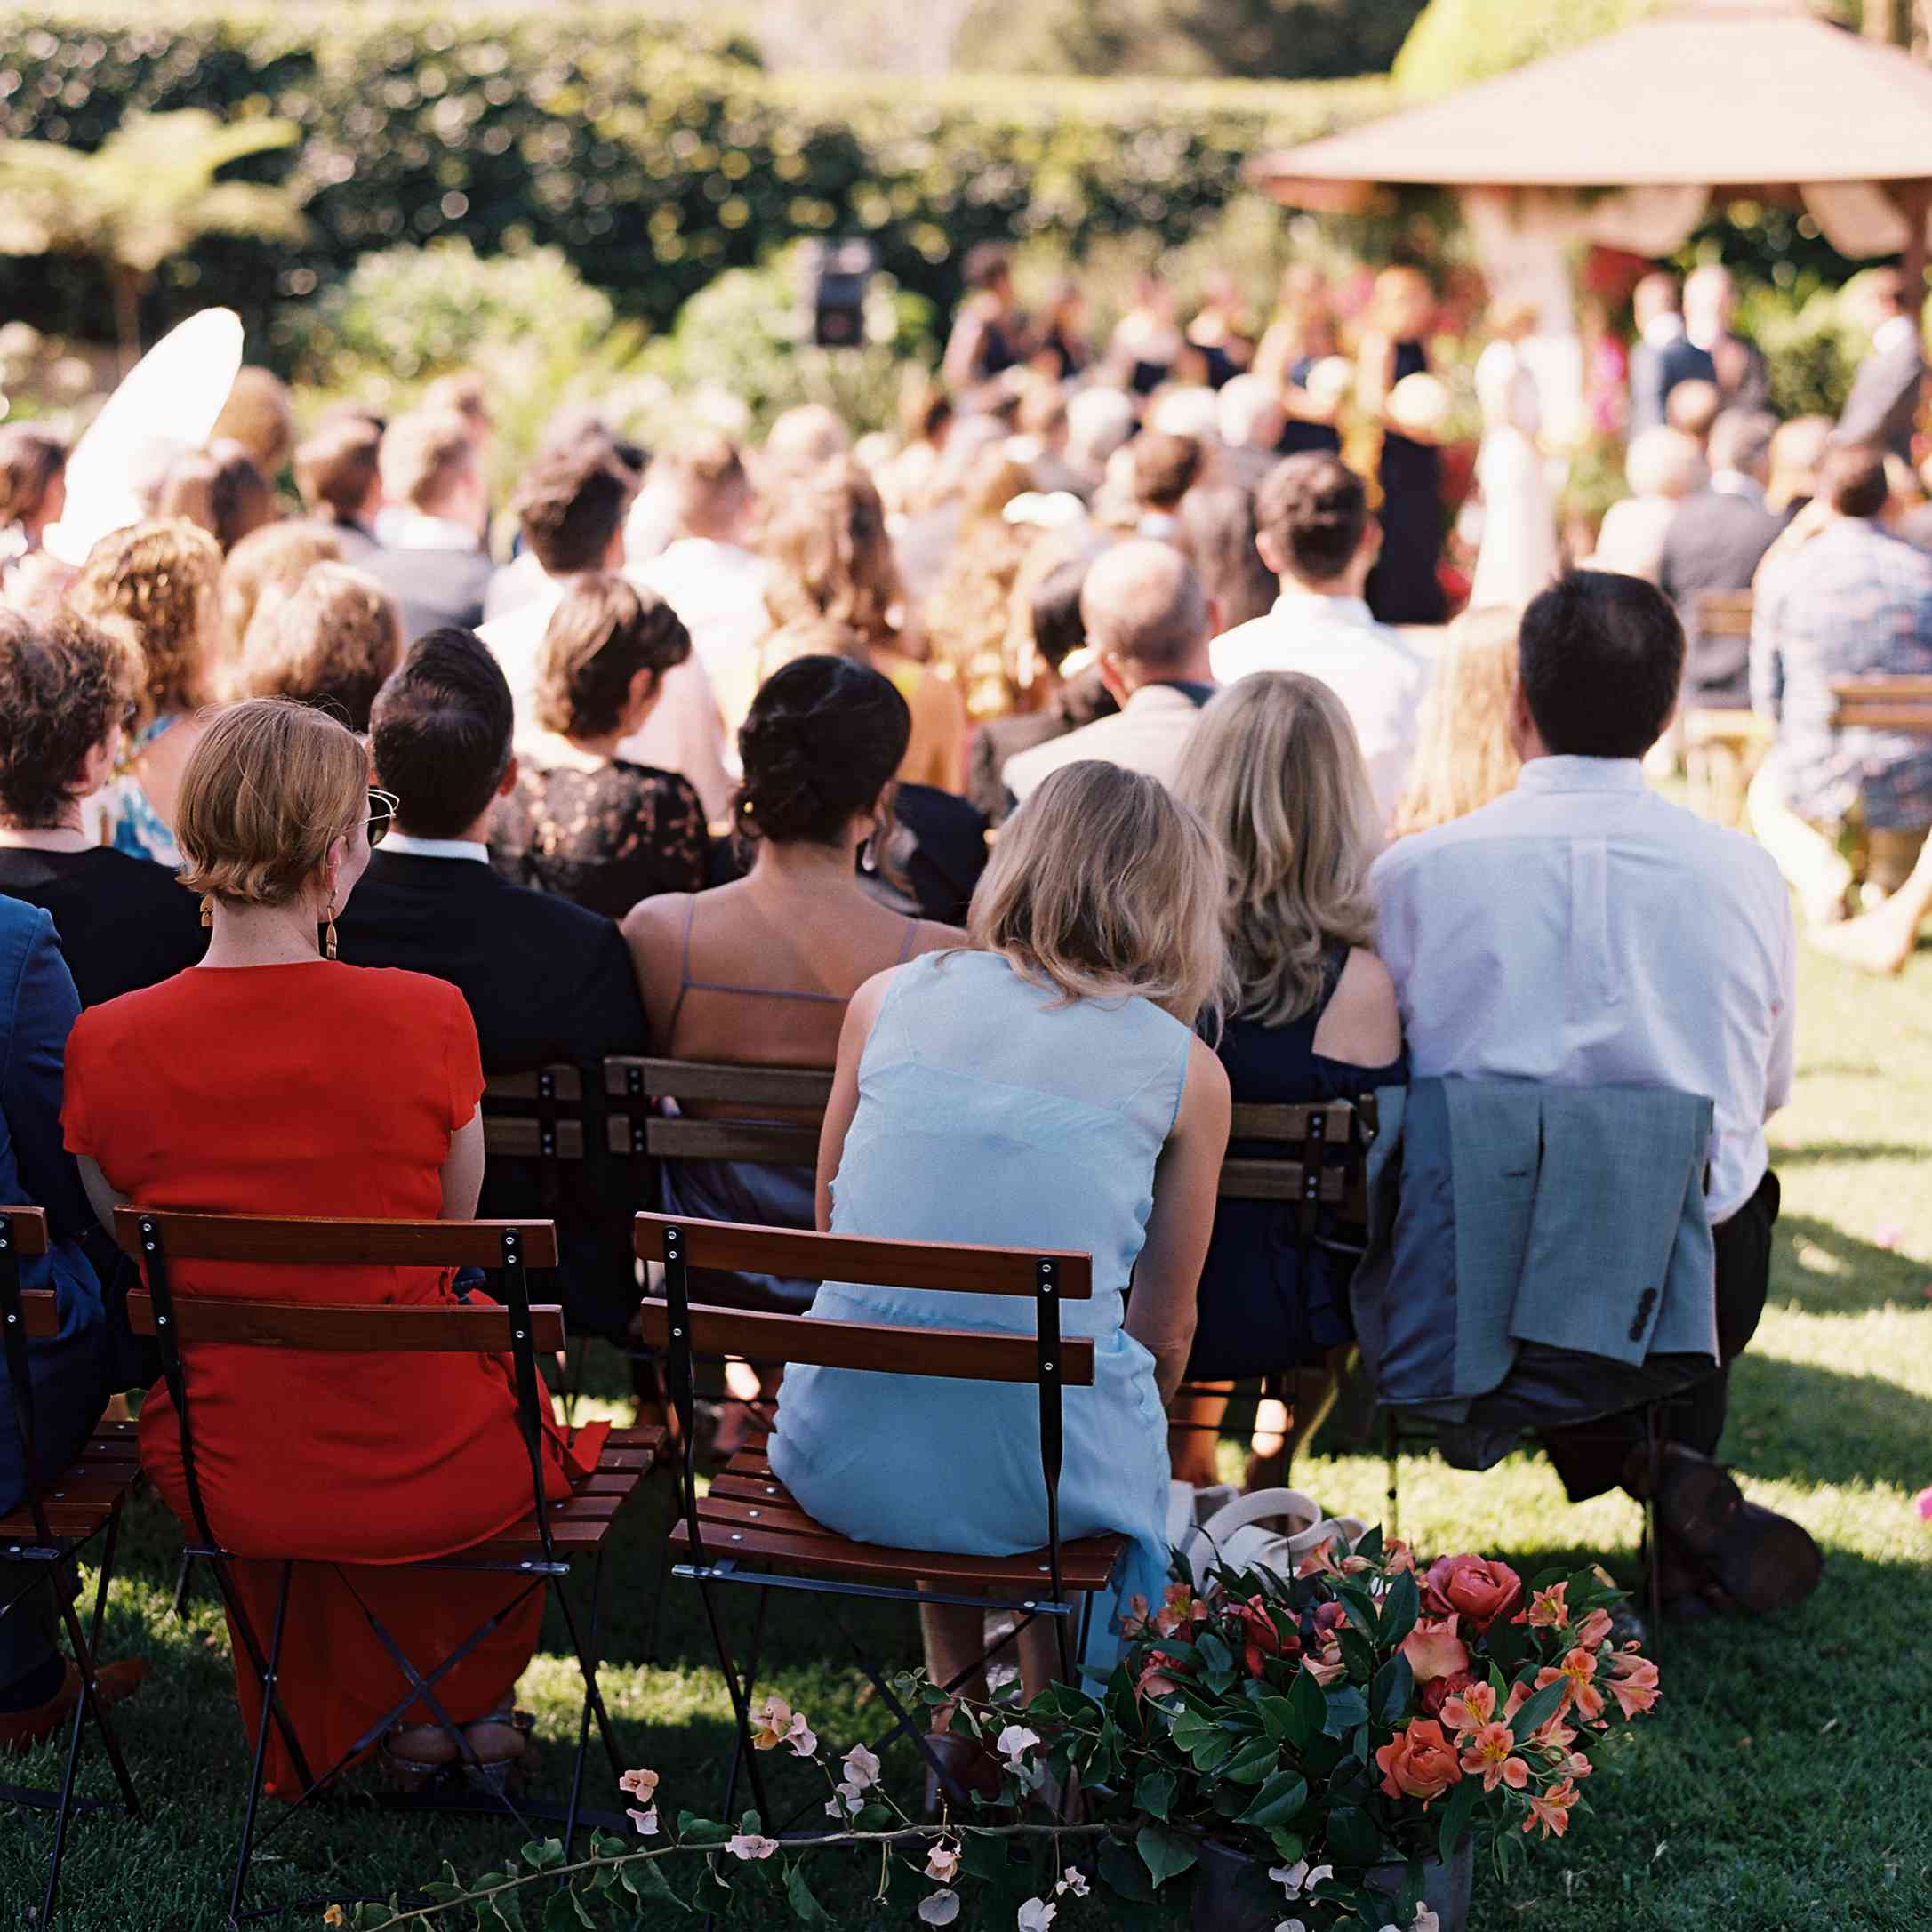 Guests watching wedding ceremony